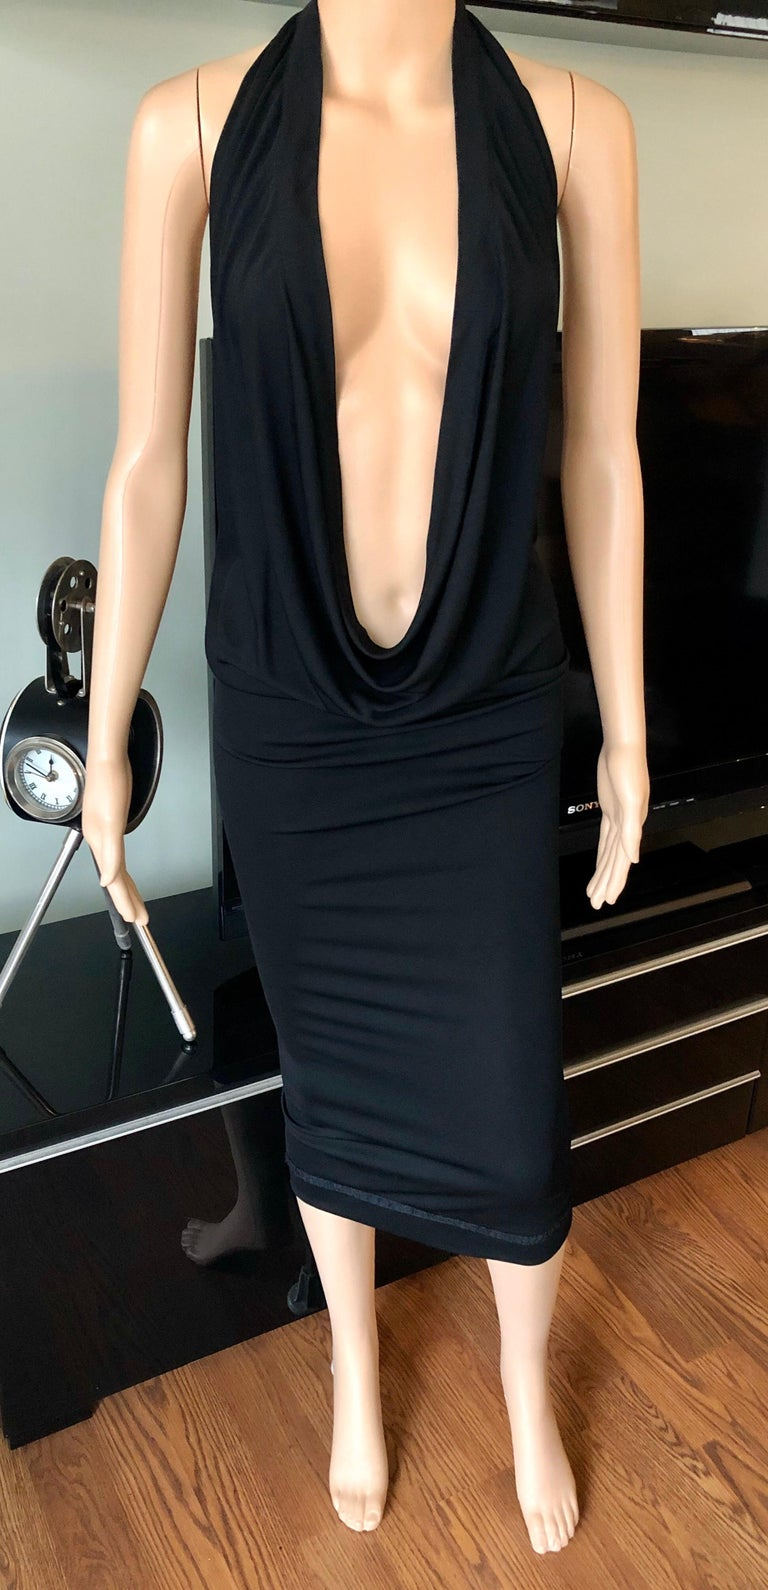 Jean Paul Gaultier Plunging Neckline Draped Halter Open Back Black Dress In Good Condition For Sale In Totowa, NJ